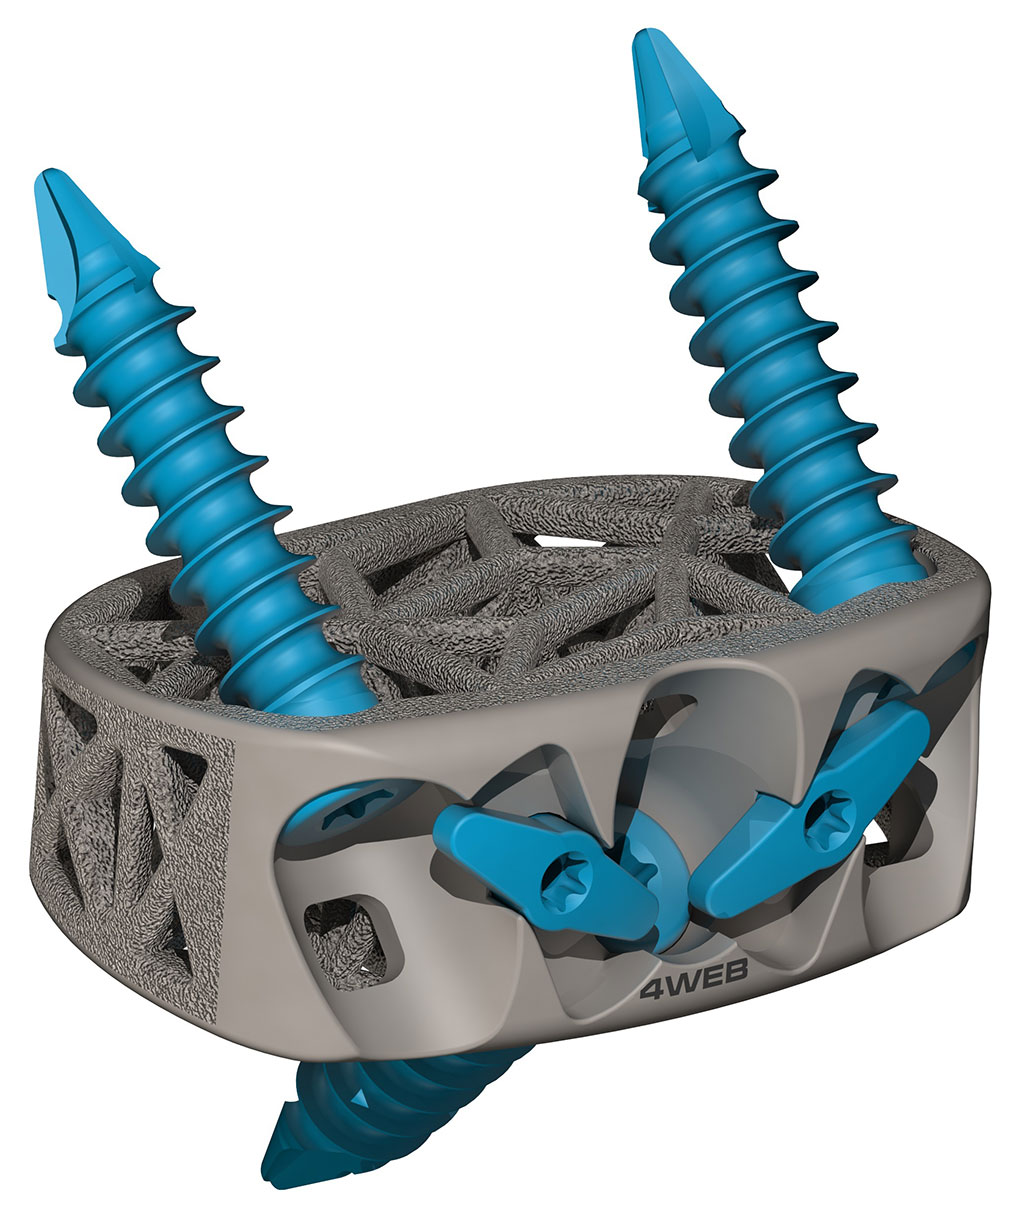 Image: The Stand-Alone Anterior Spine Truss System (ASTS-SA) (Photo courtesy of 4WEB Medical)